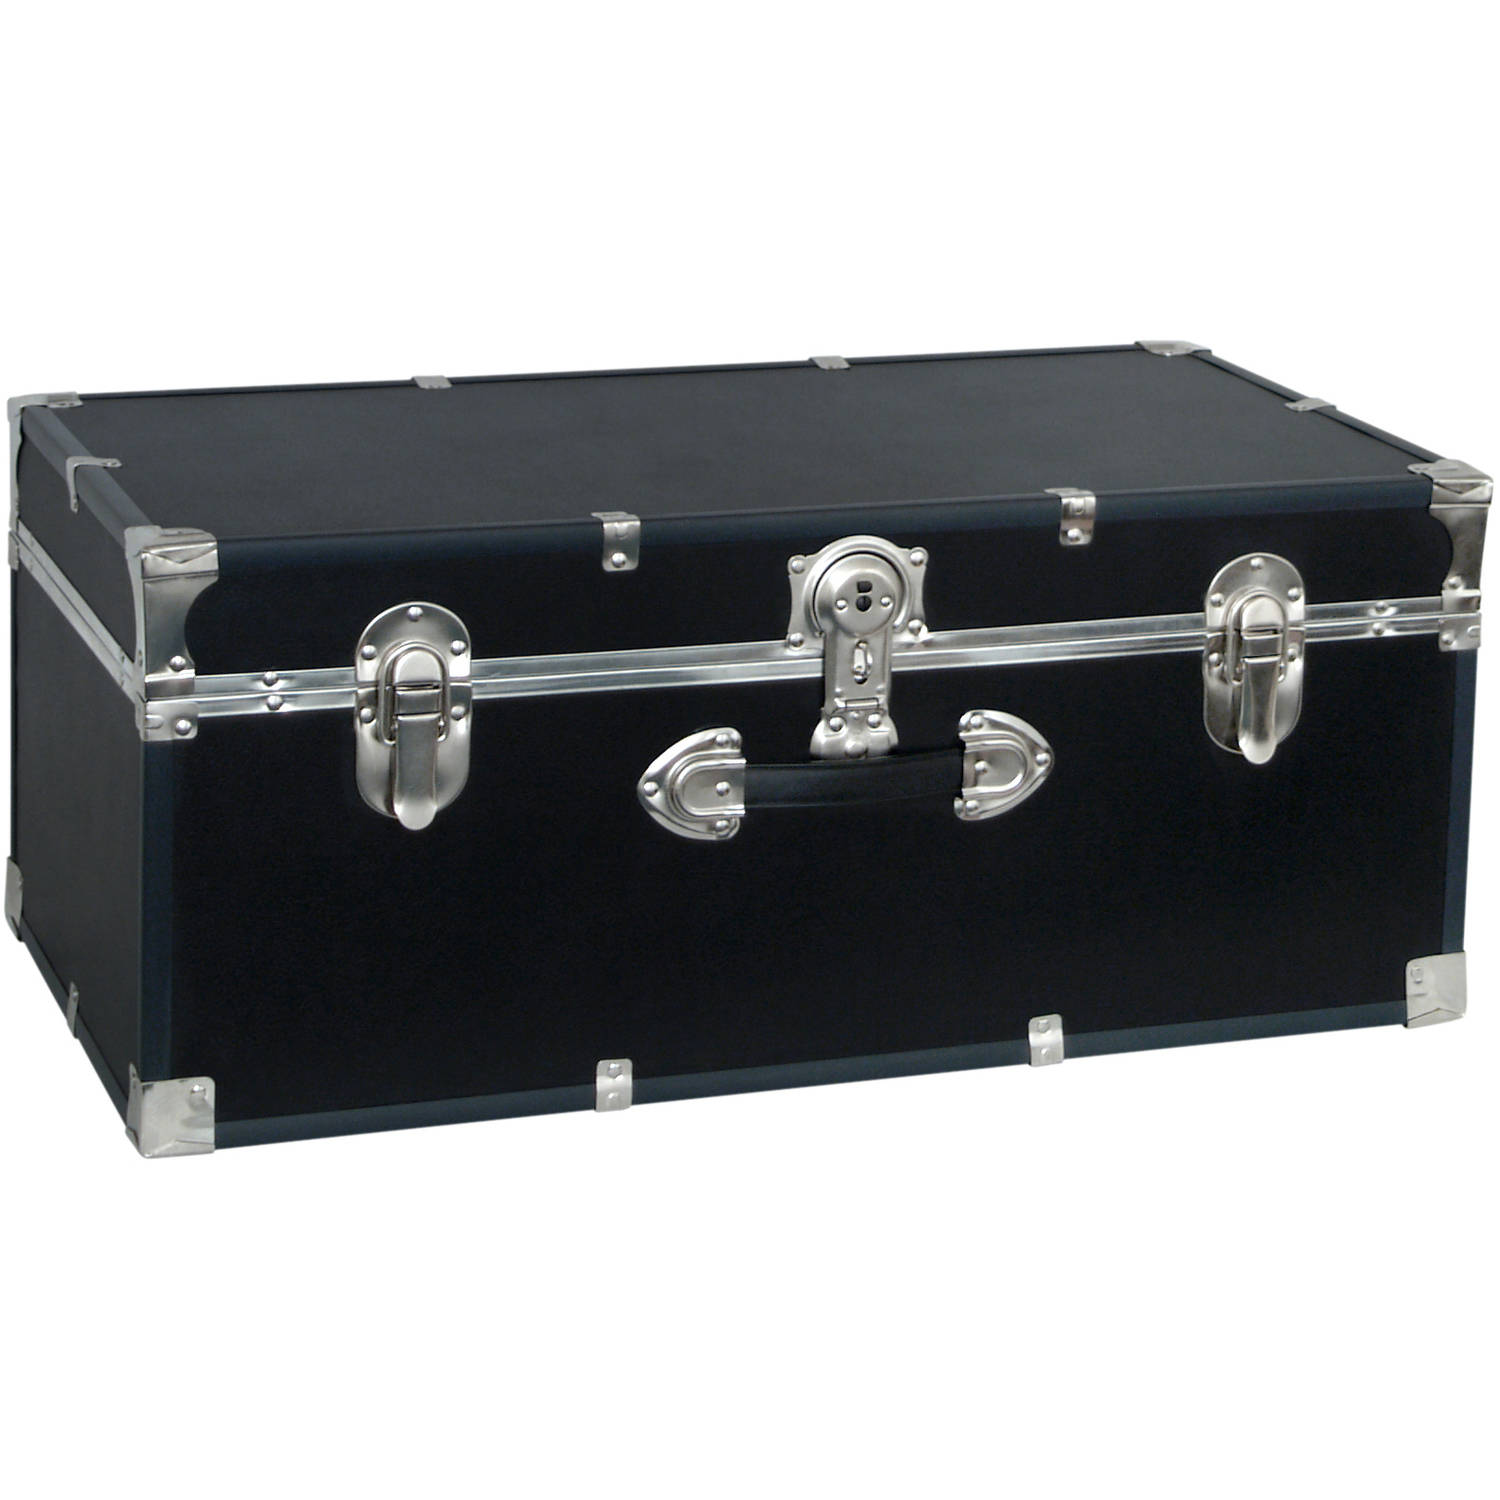 "Seward™ Collegiate Collection Footlocker Trunk, 30"", Black"